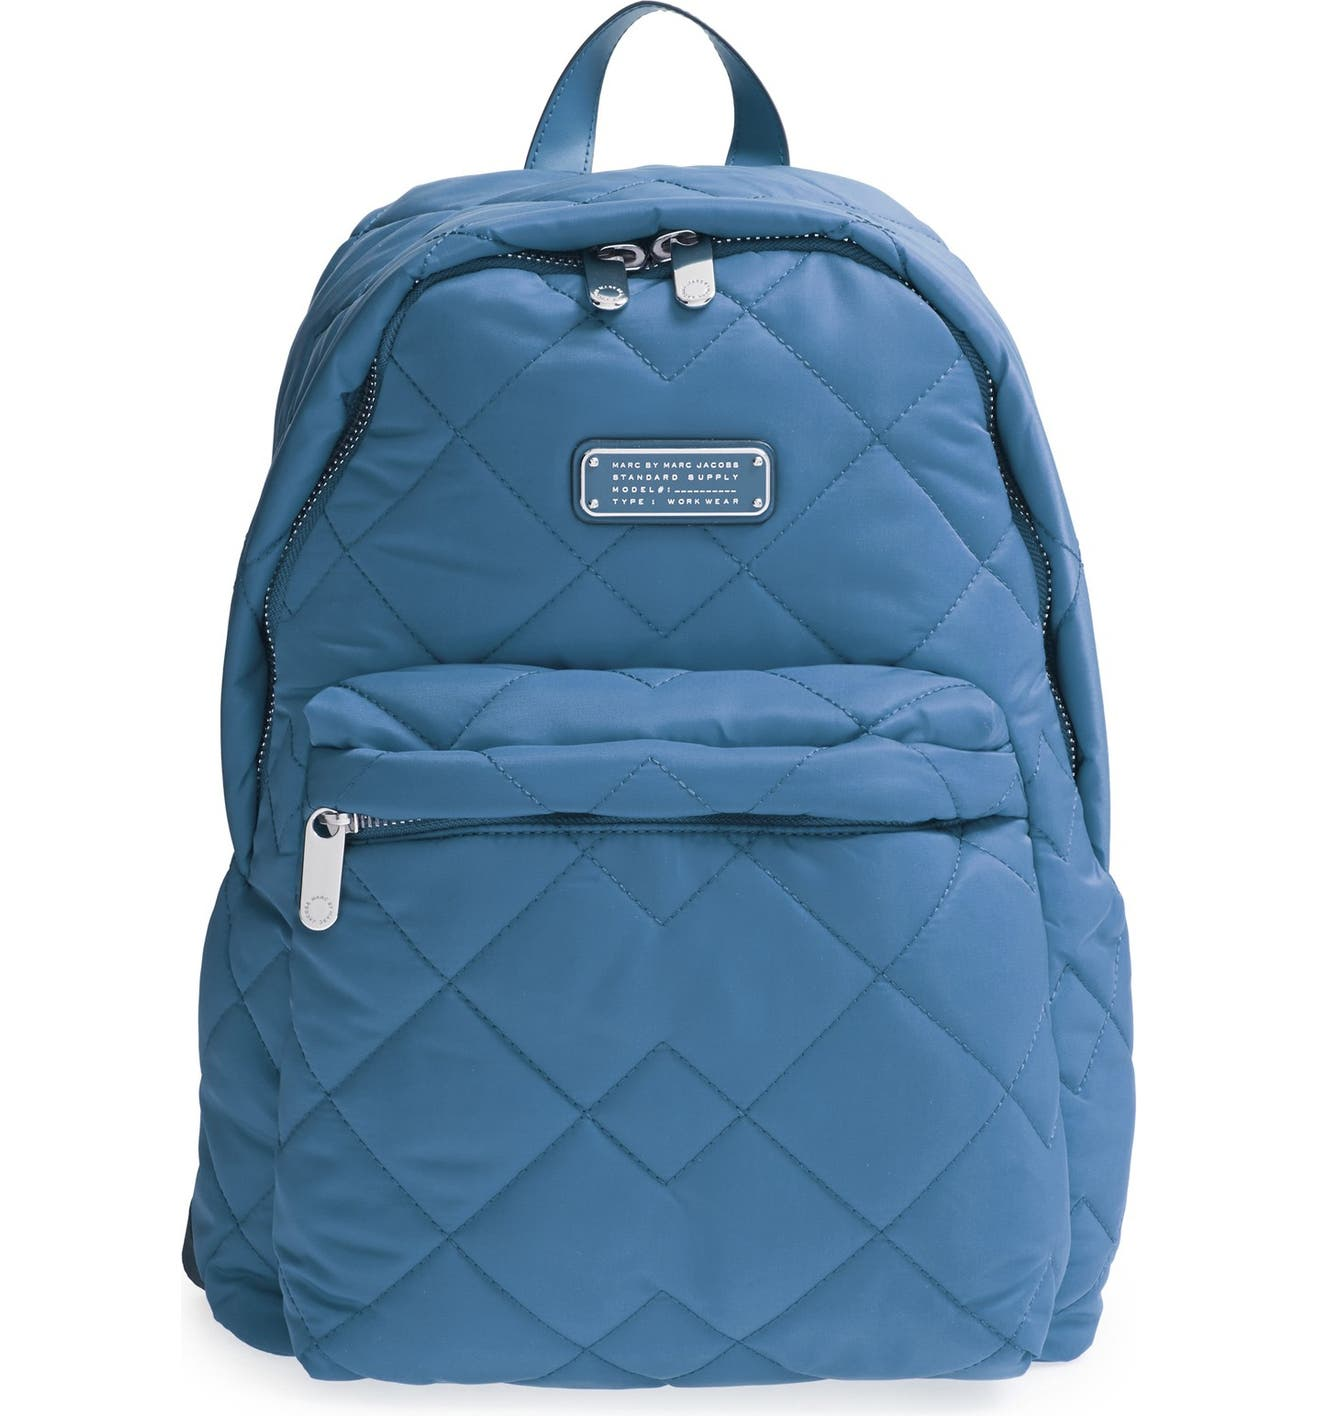 110c2de6ecd8 Marc Jacobs Quilted Nylon Backpack Review - Best Quilt Grafimage.co